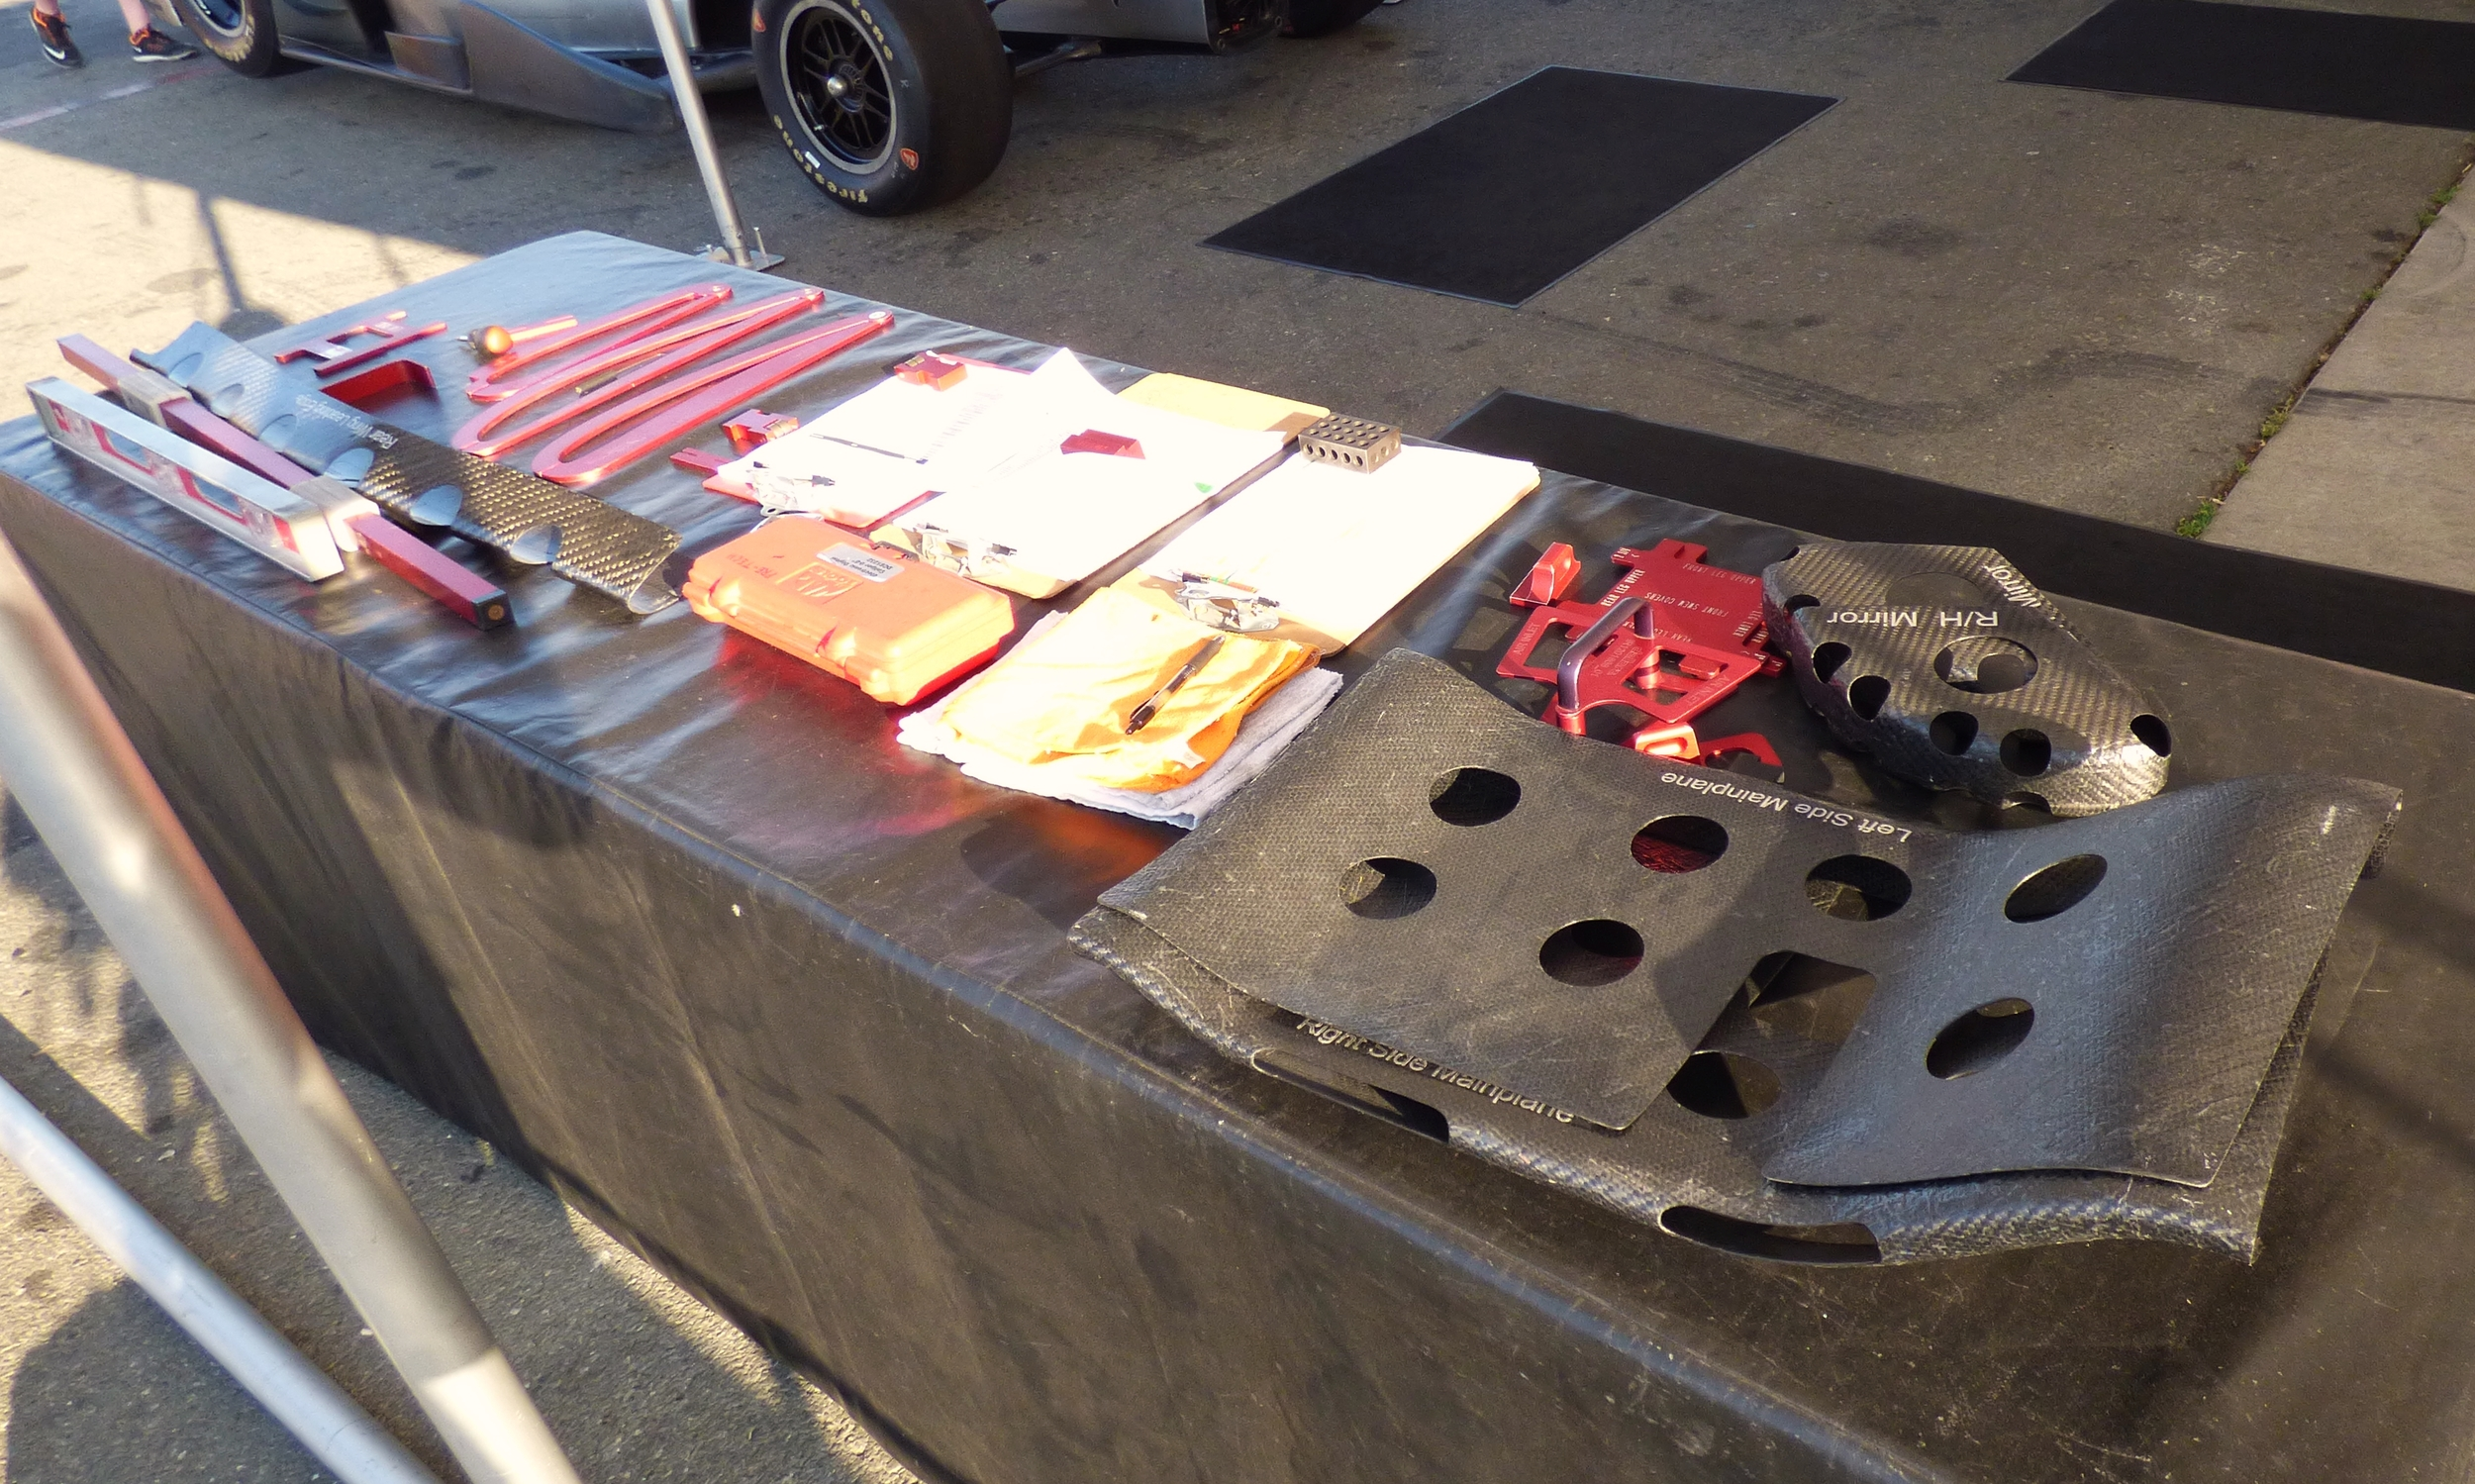 The tools of the trade for the scrutineers.